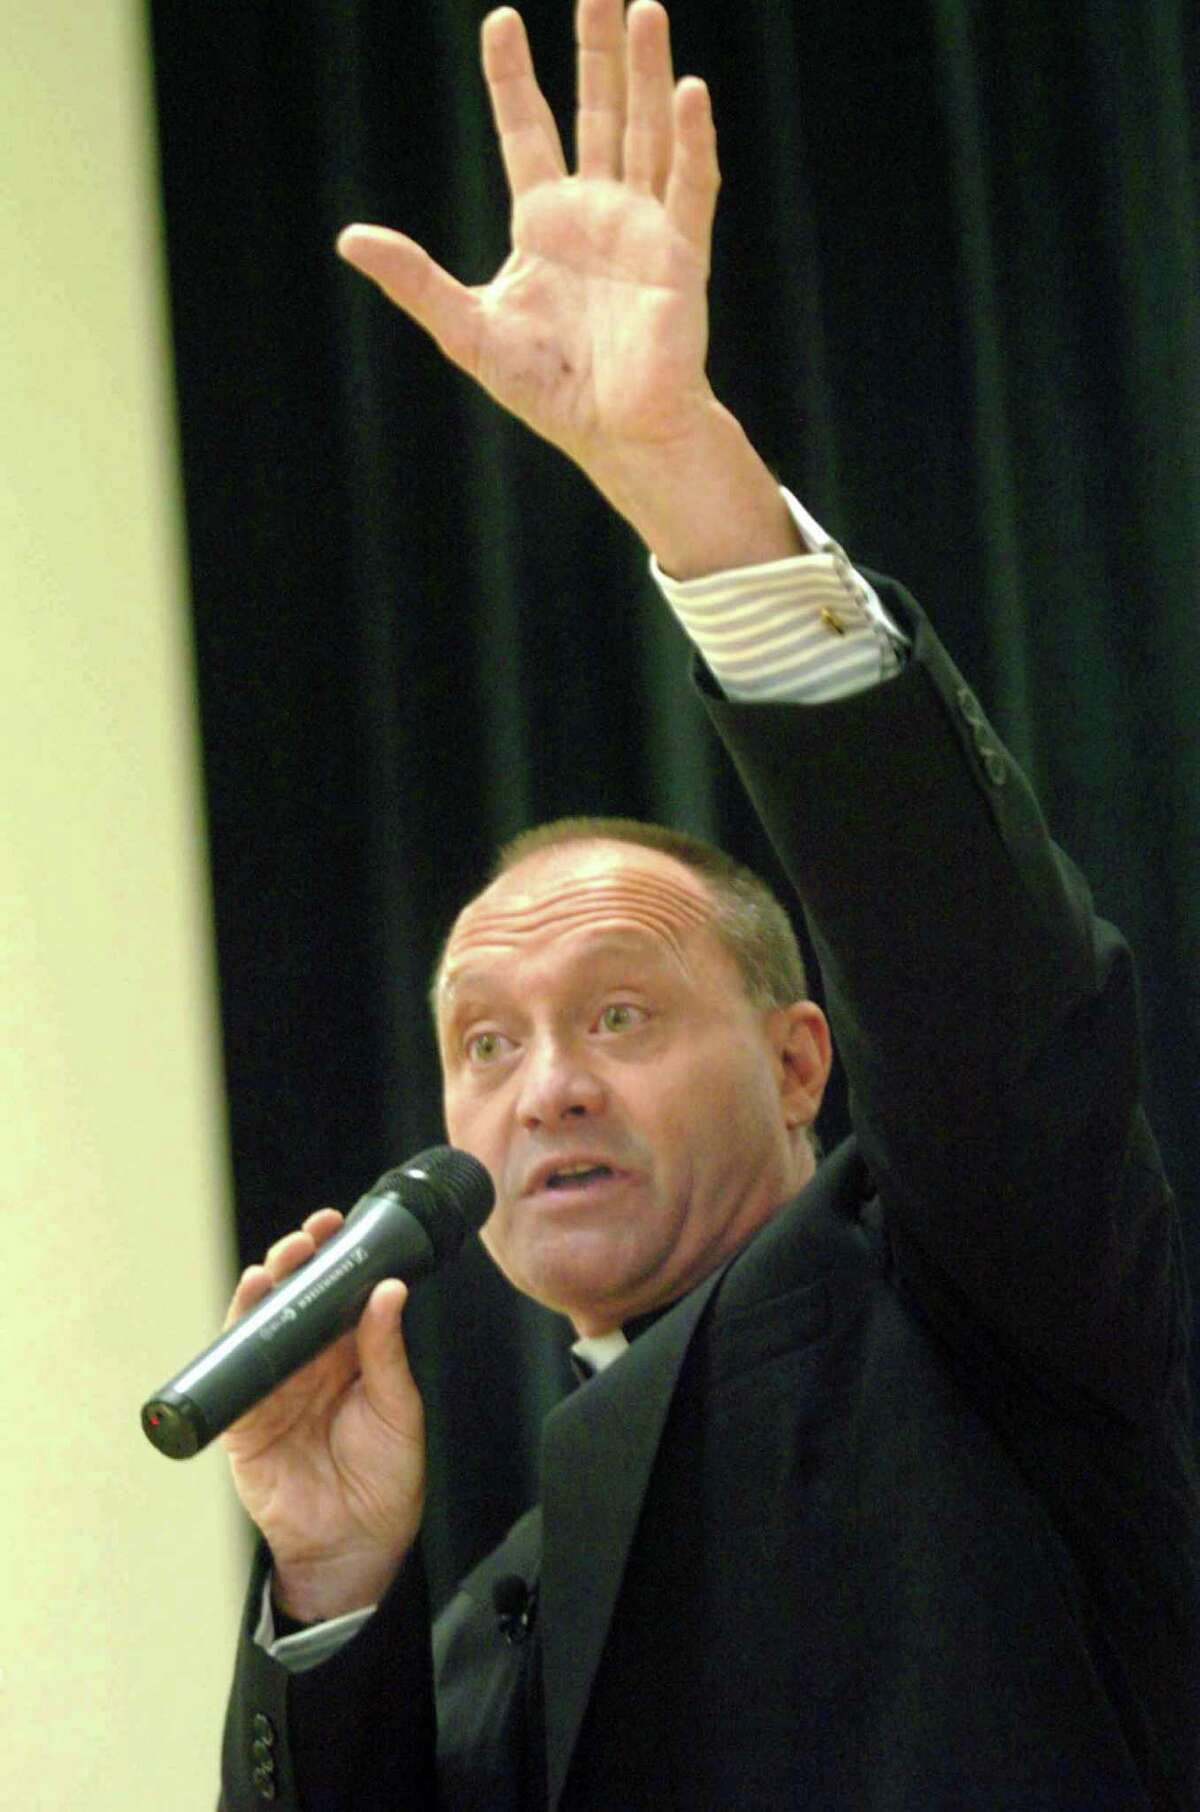 Monsignor Kevin Wallin addresses the faithful, a packed house, at the Cathloic Center on Jewett Avenue, in Bridgeport, Conn. May 4th, 2006.